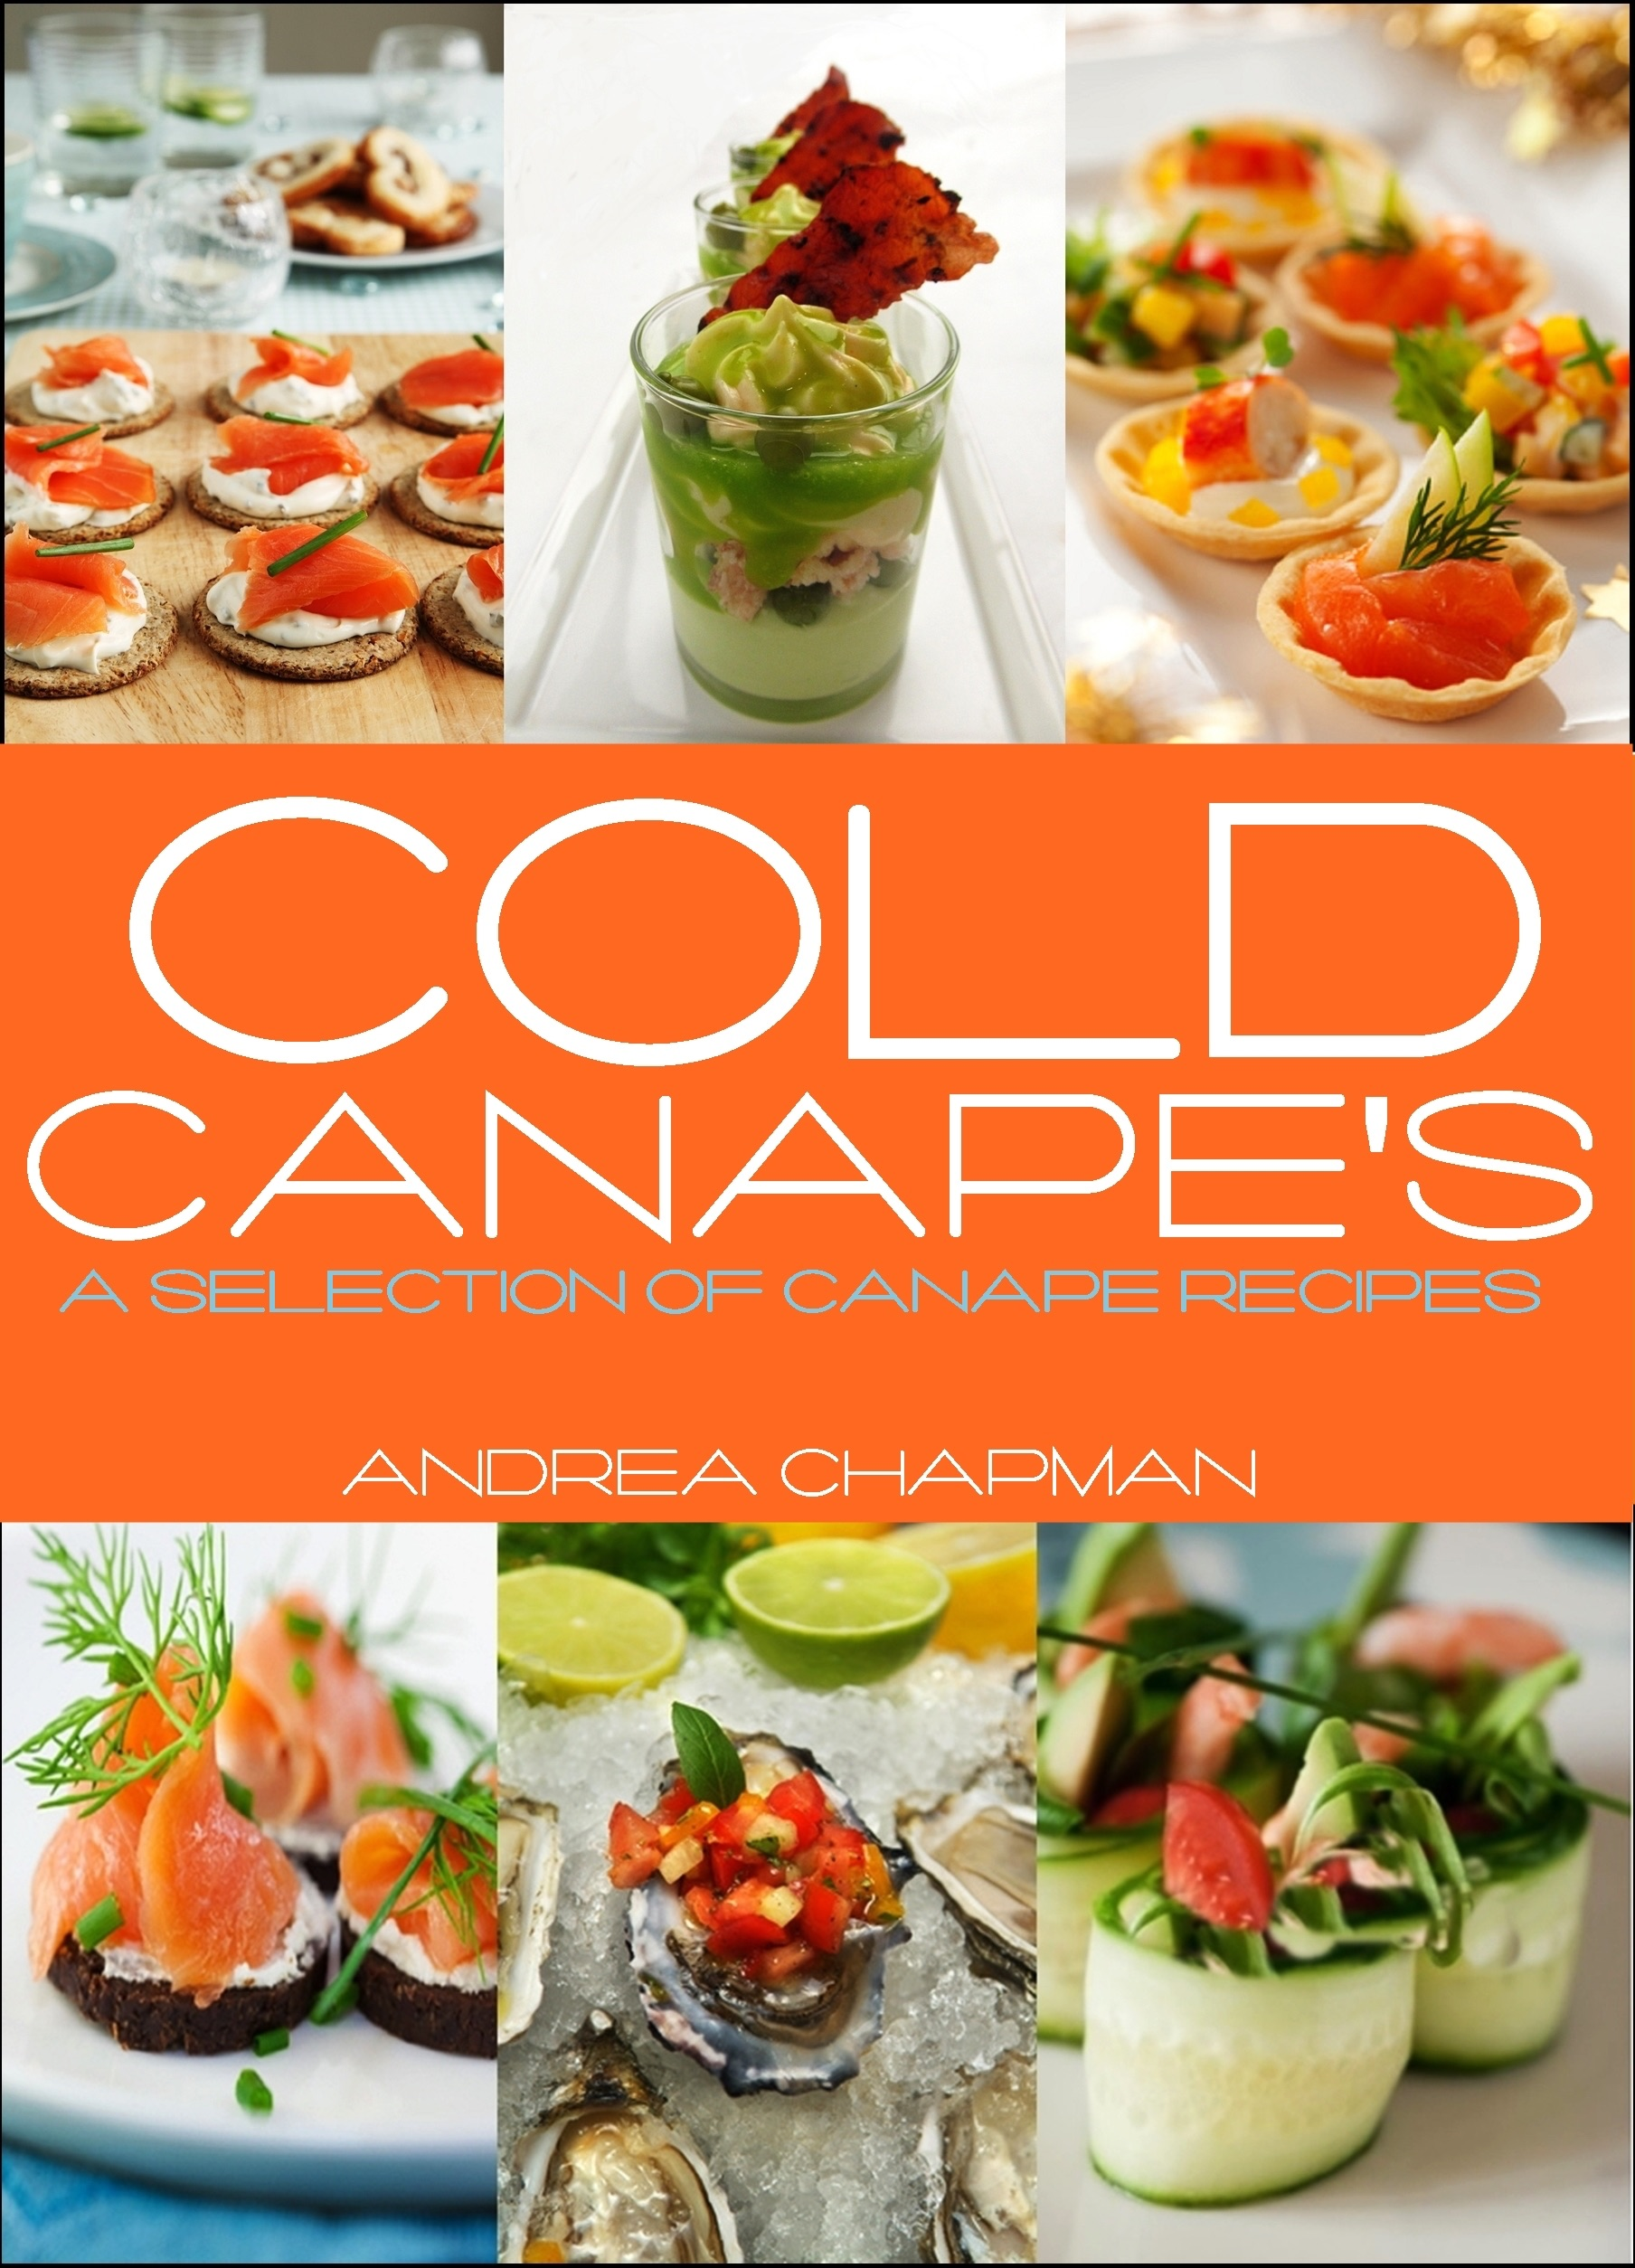 for Cold canapes